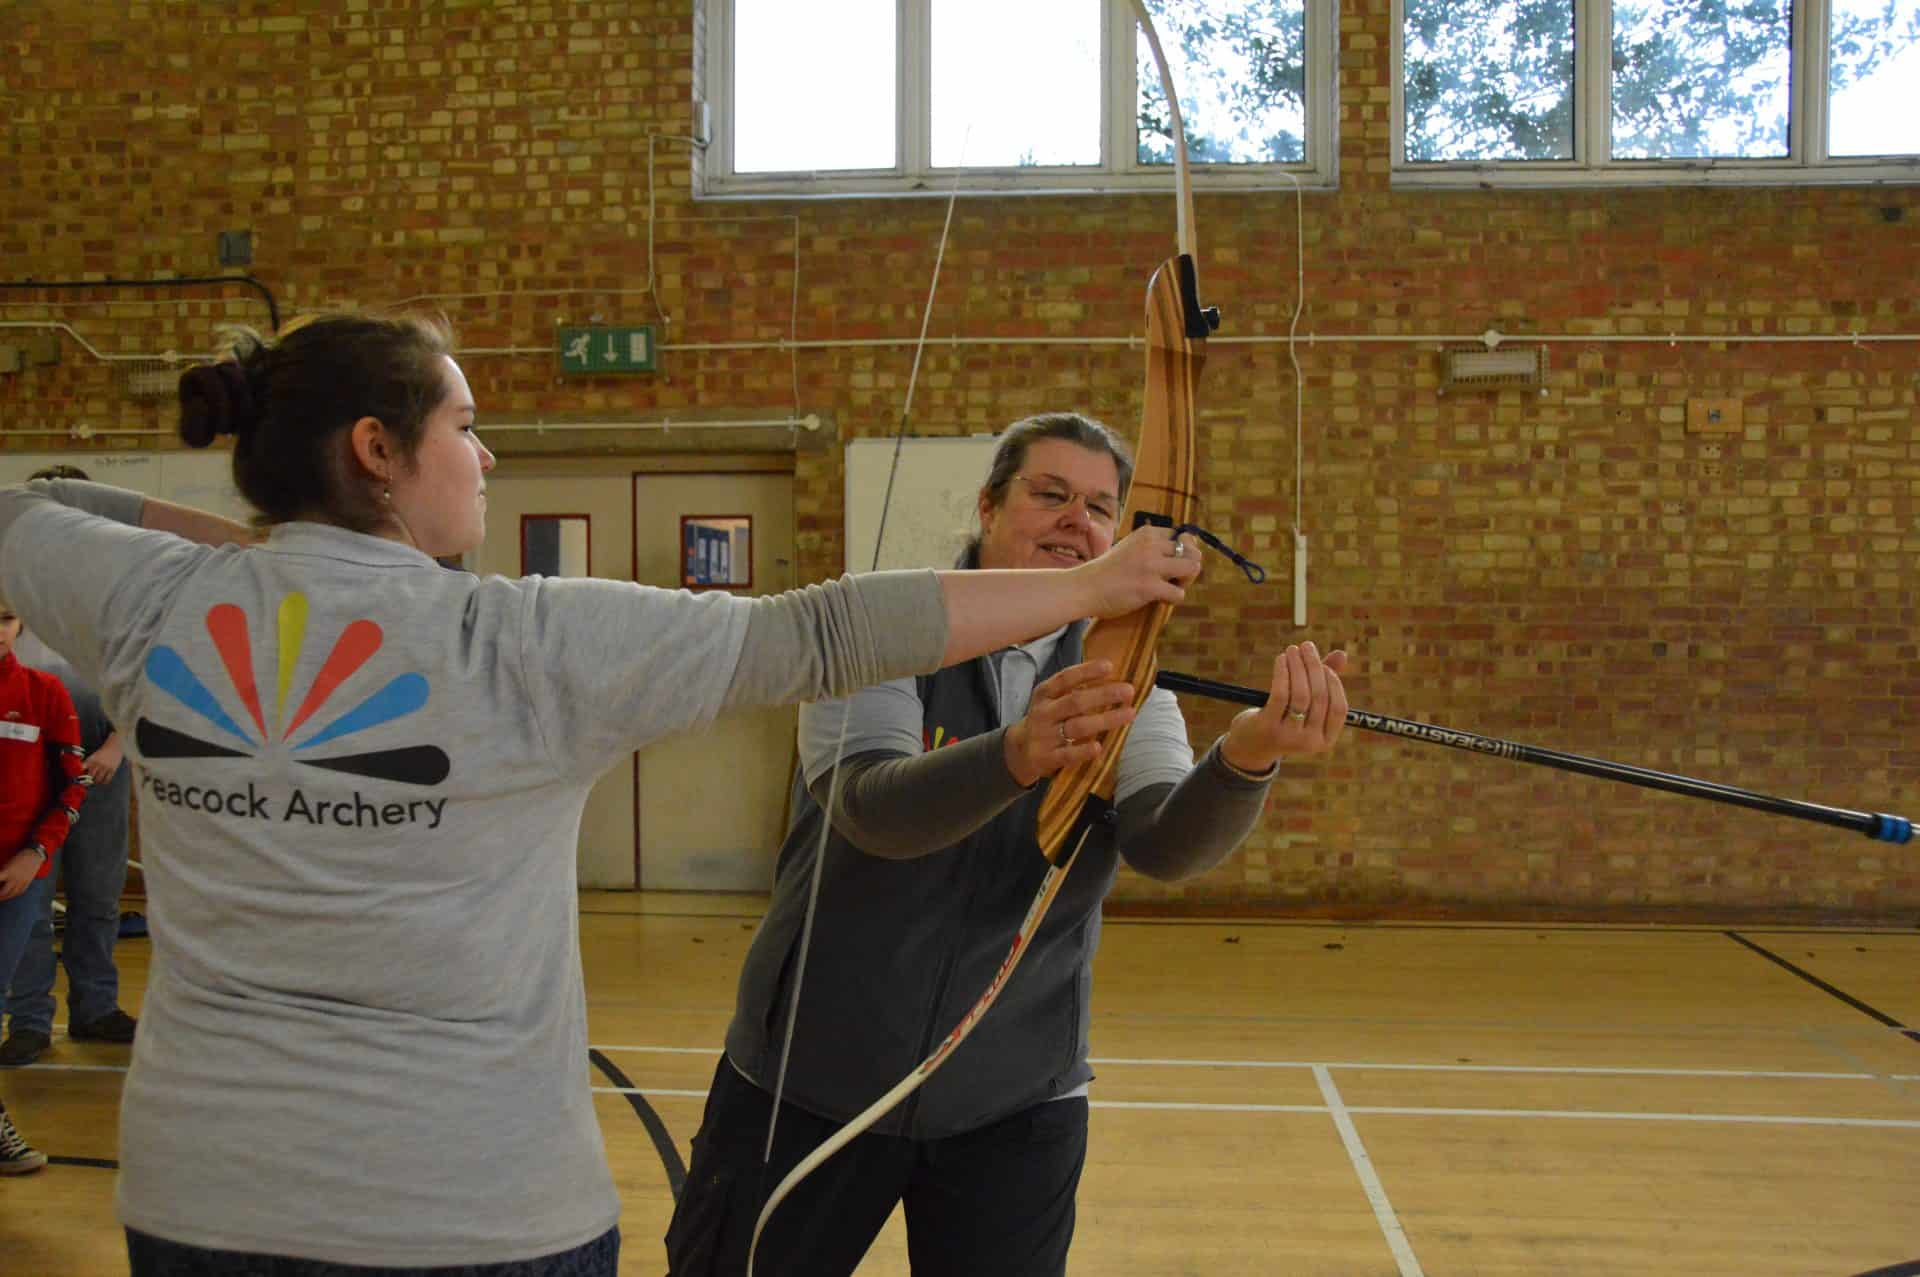 Mary Watson of Peacock Archers sets up a beginners course